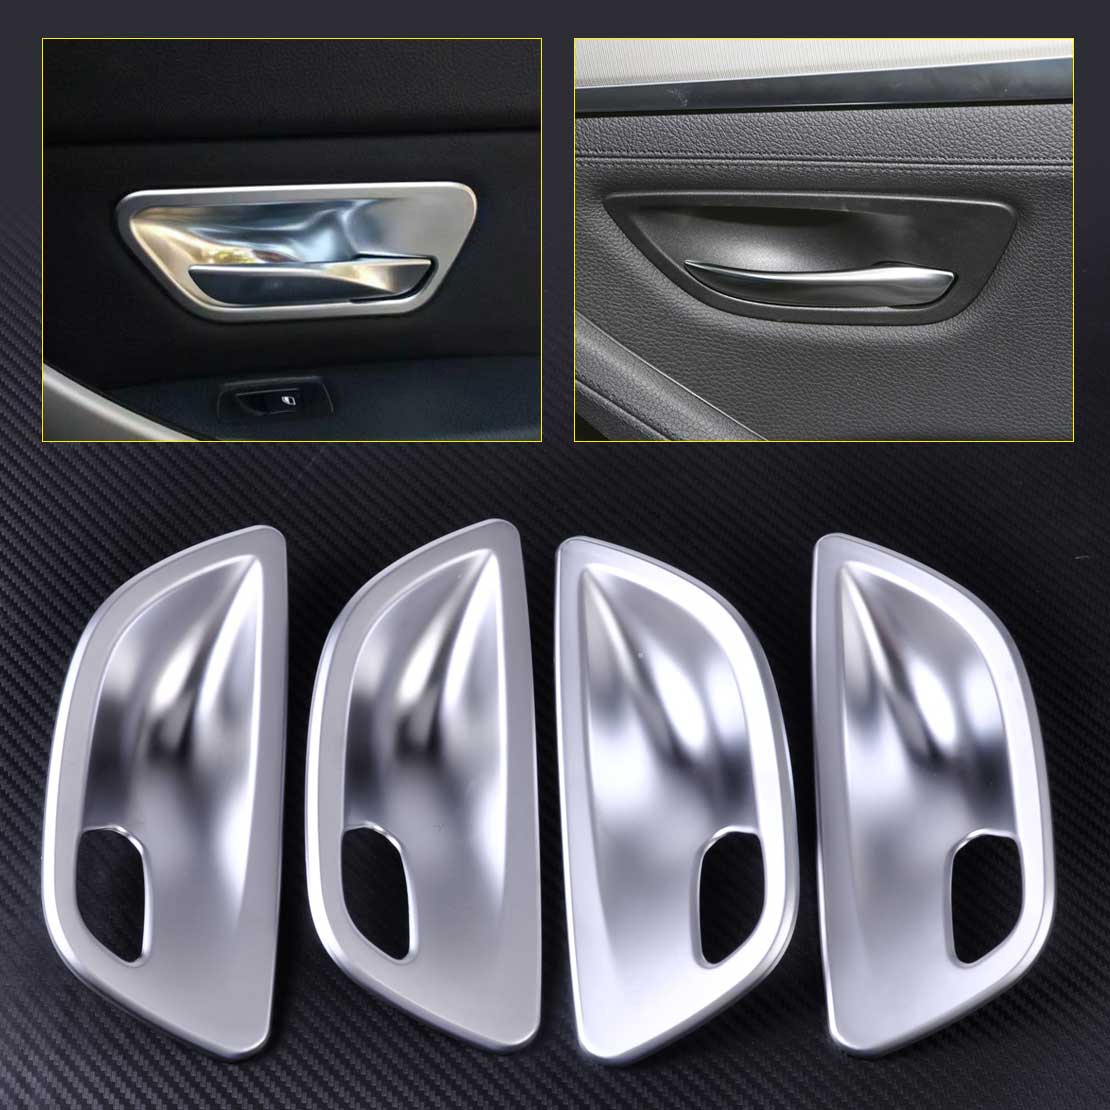 CITALL 4pcs ABS Matte Chrome Interior Door Handle Cup Bowl Cover Trim for BMW 5 Series F10 Sedan 2011 2012 2013 2014 2015 2016 6pcs abs chrome interior inner door side handle bowl cover trim for 2011 2012 2013 2014 2015 2016 porsche cayenne car styling